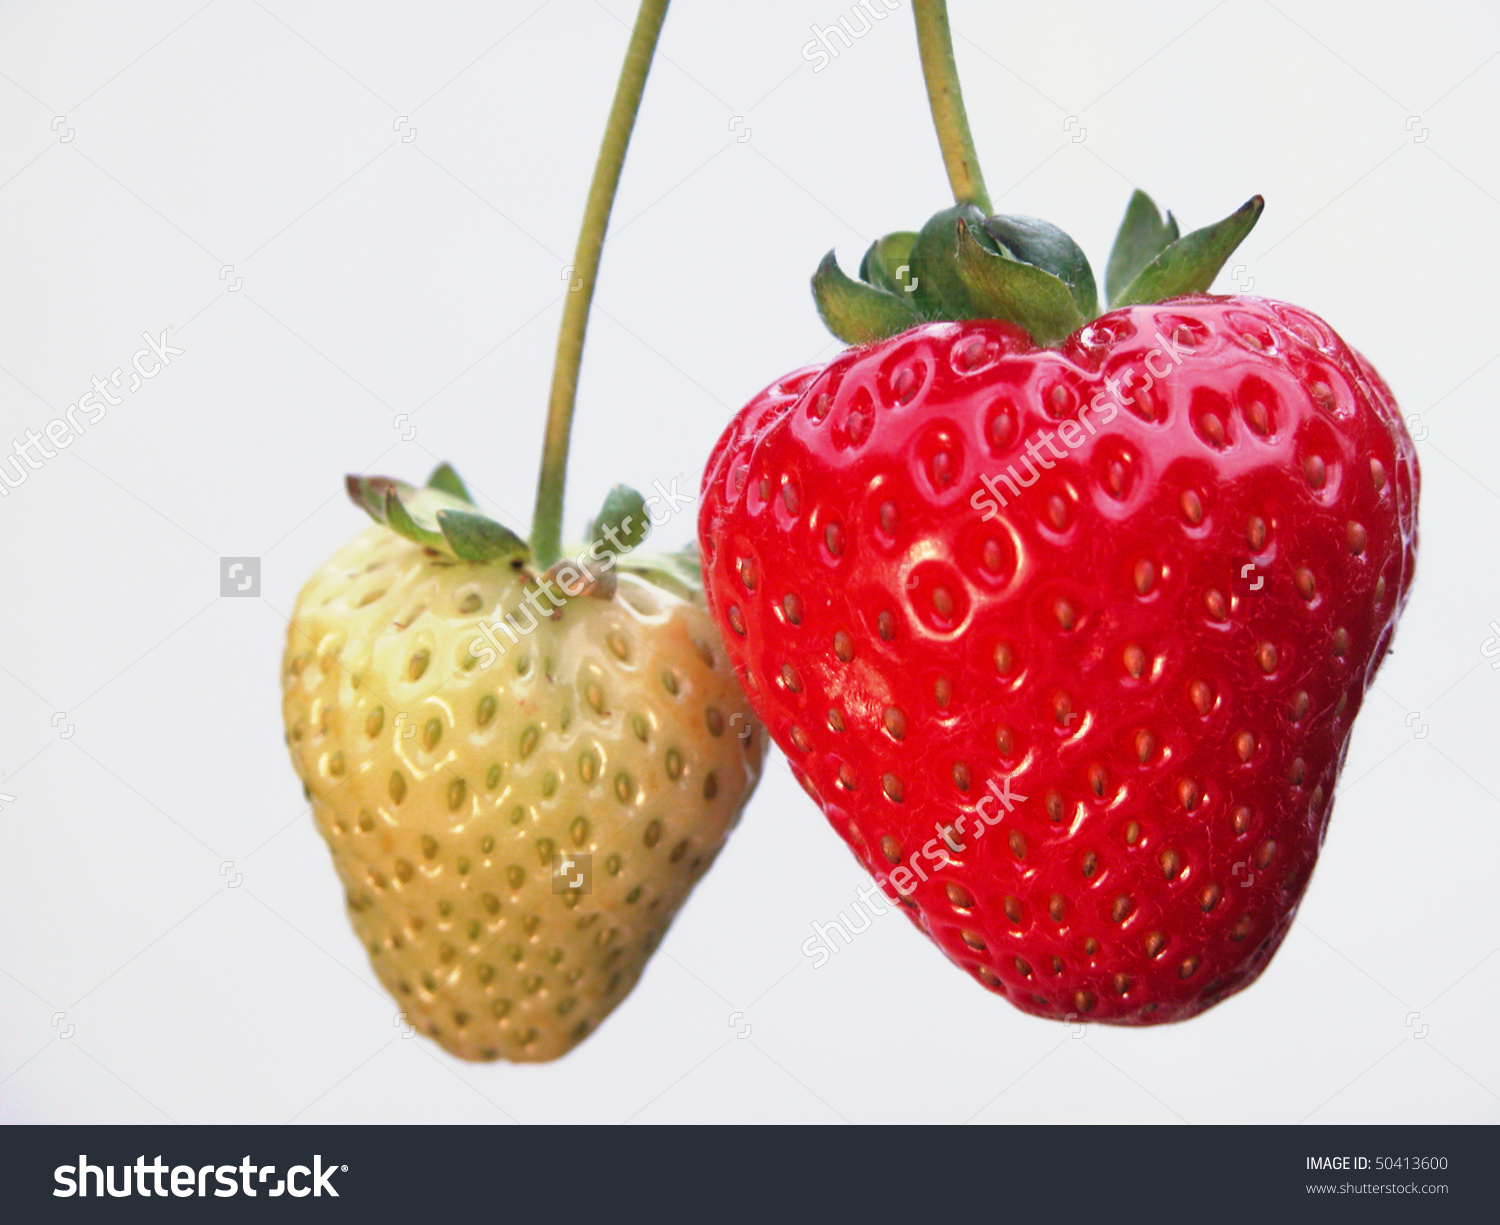 Ripe Unripe Strawberry Stock Photo 50413600.